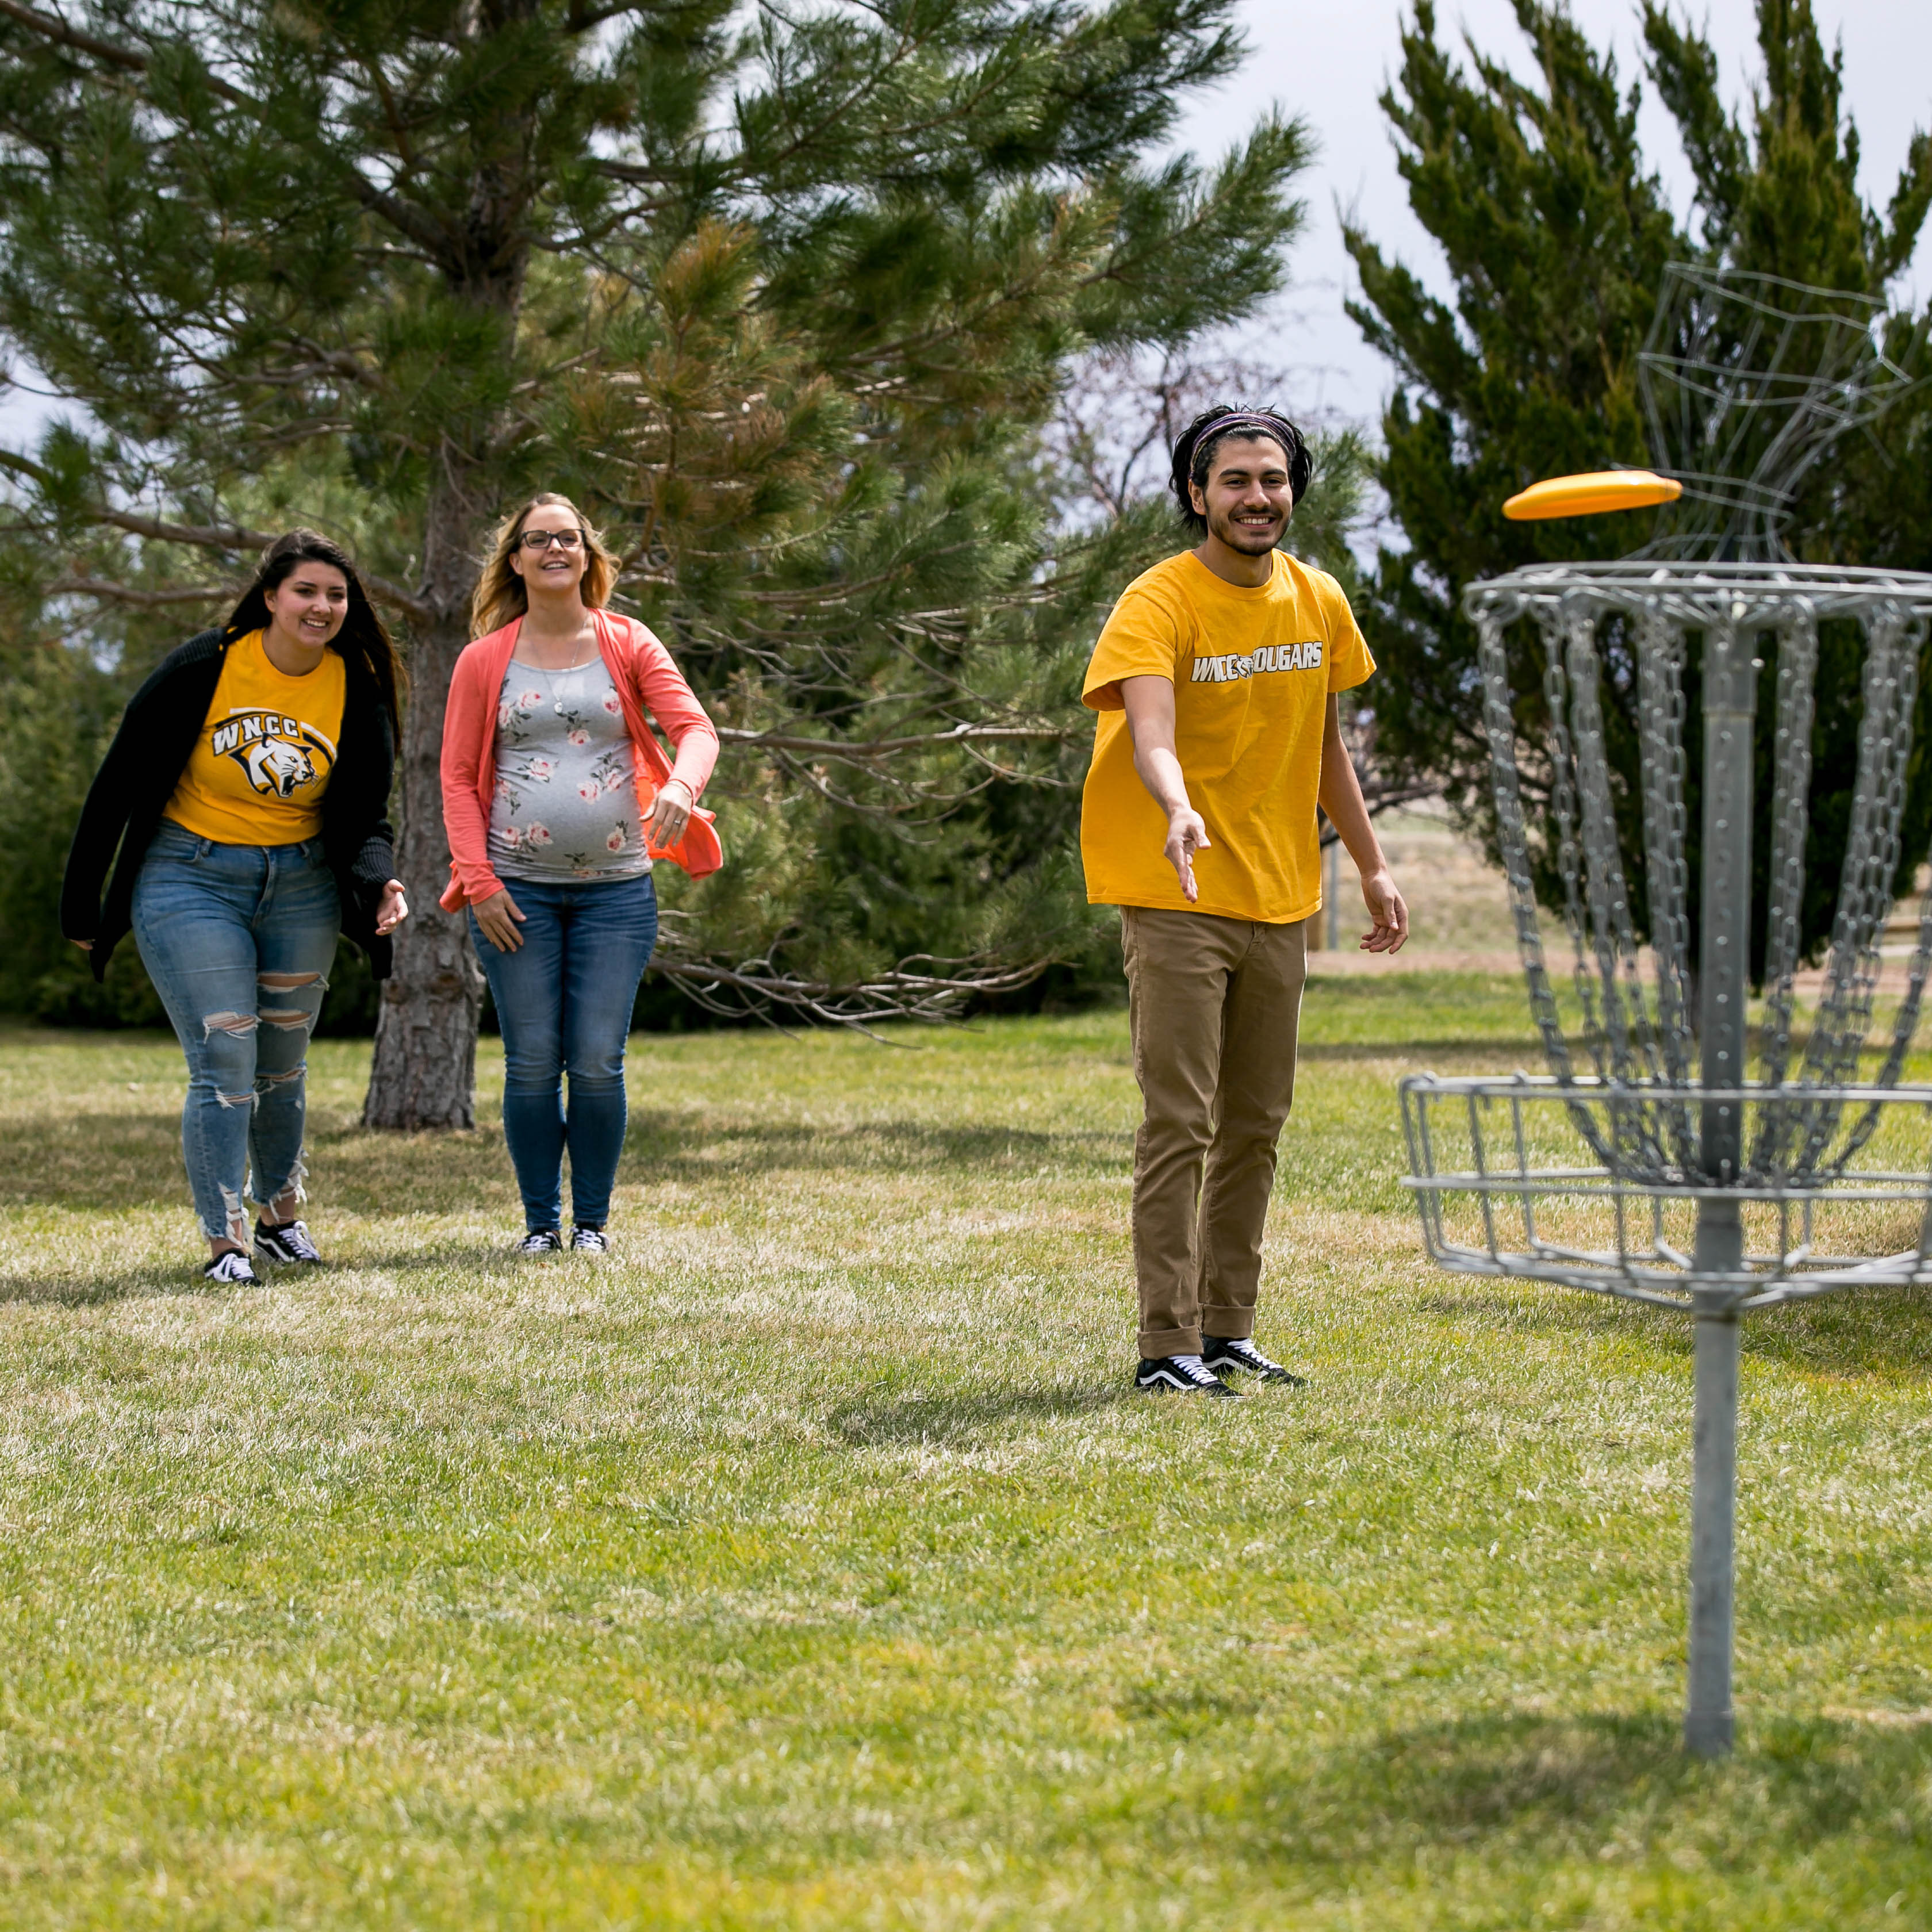 wncc sidney students playing disc golf